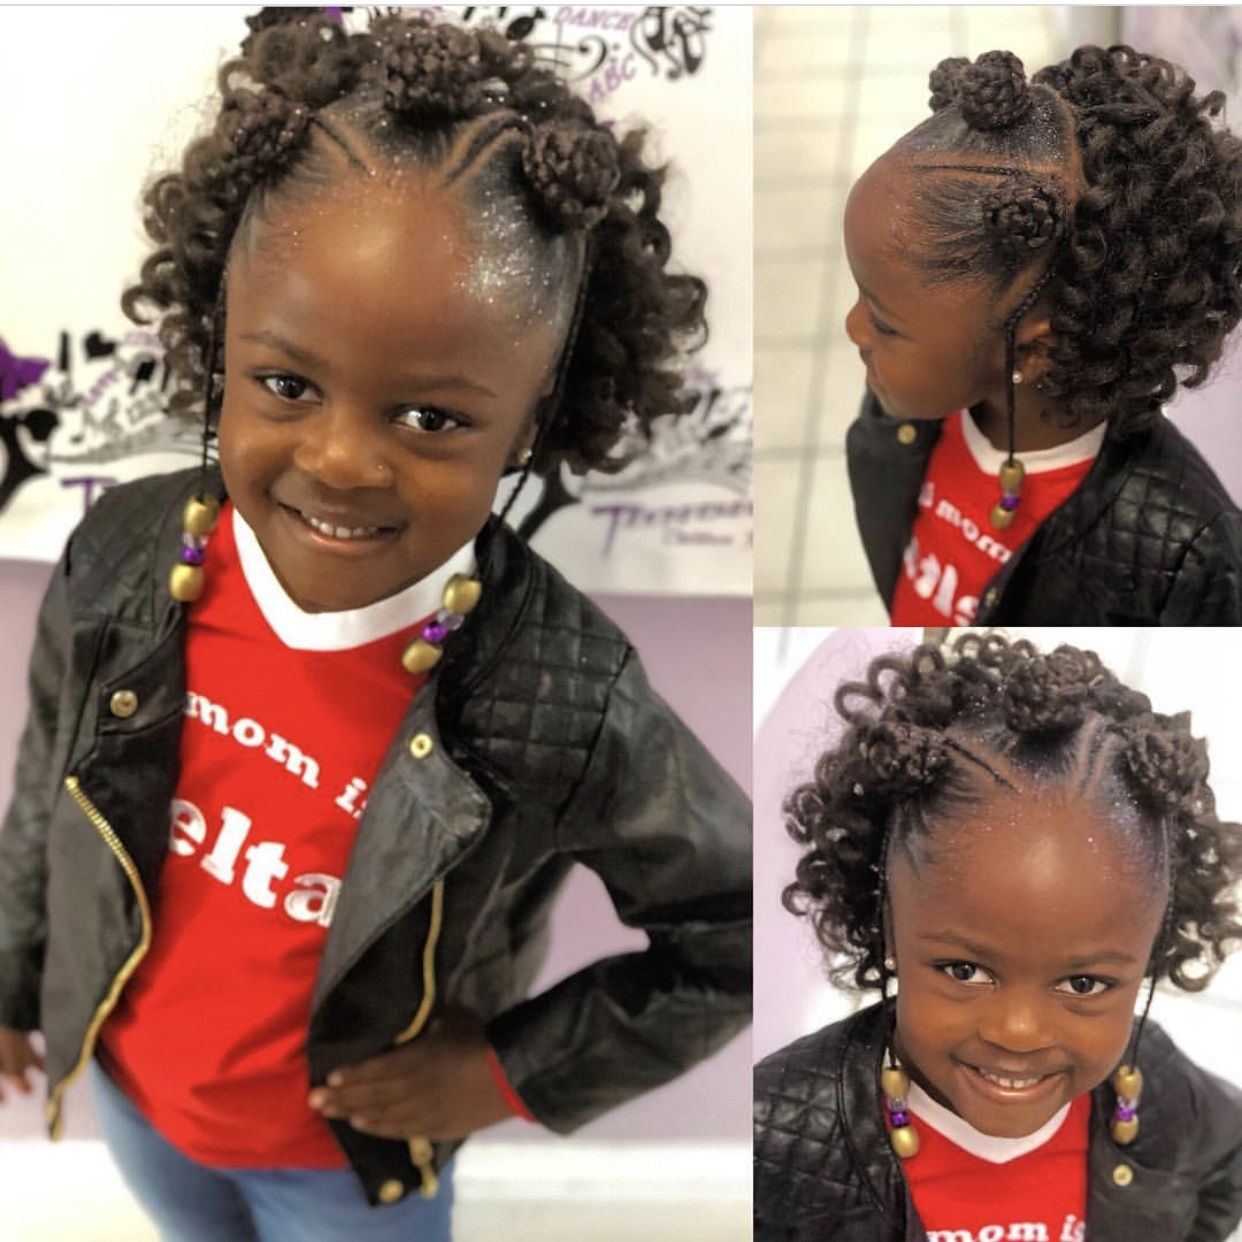 Christmas Hairstyles For Black Girls.Christmas Natural Hairstyles For Kids Holiday Hair Shop Www